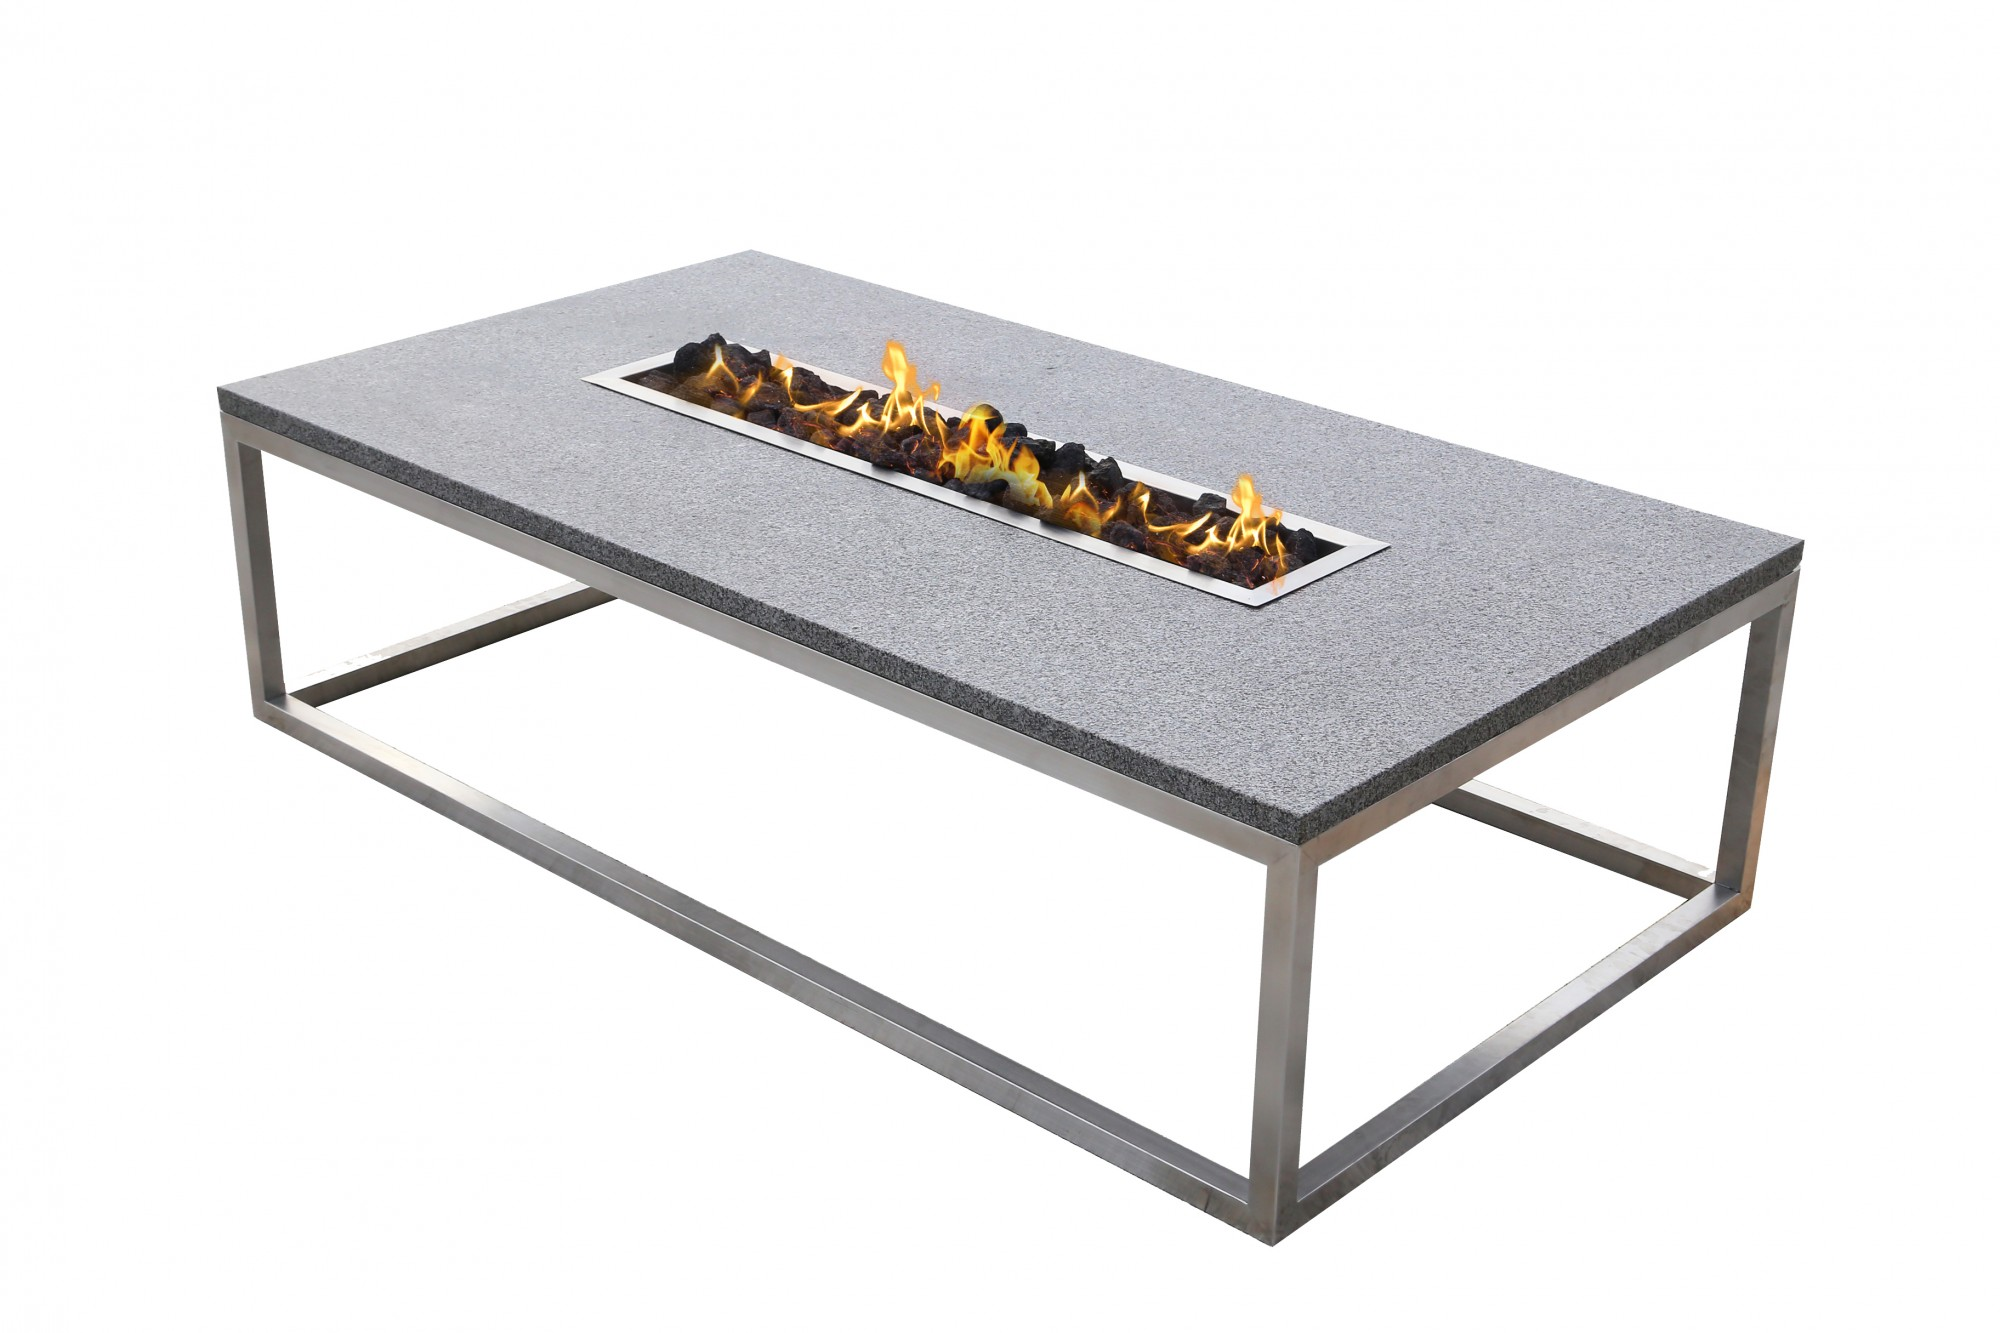 Granite Fire Table with Stainless Base